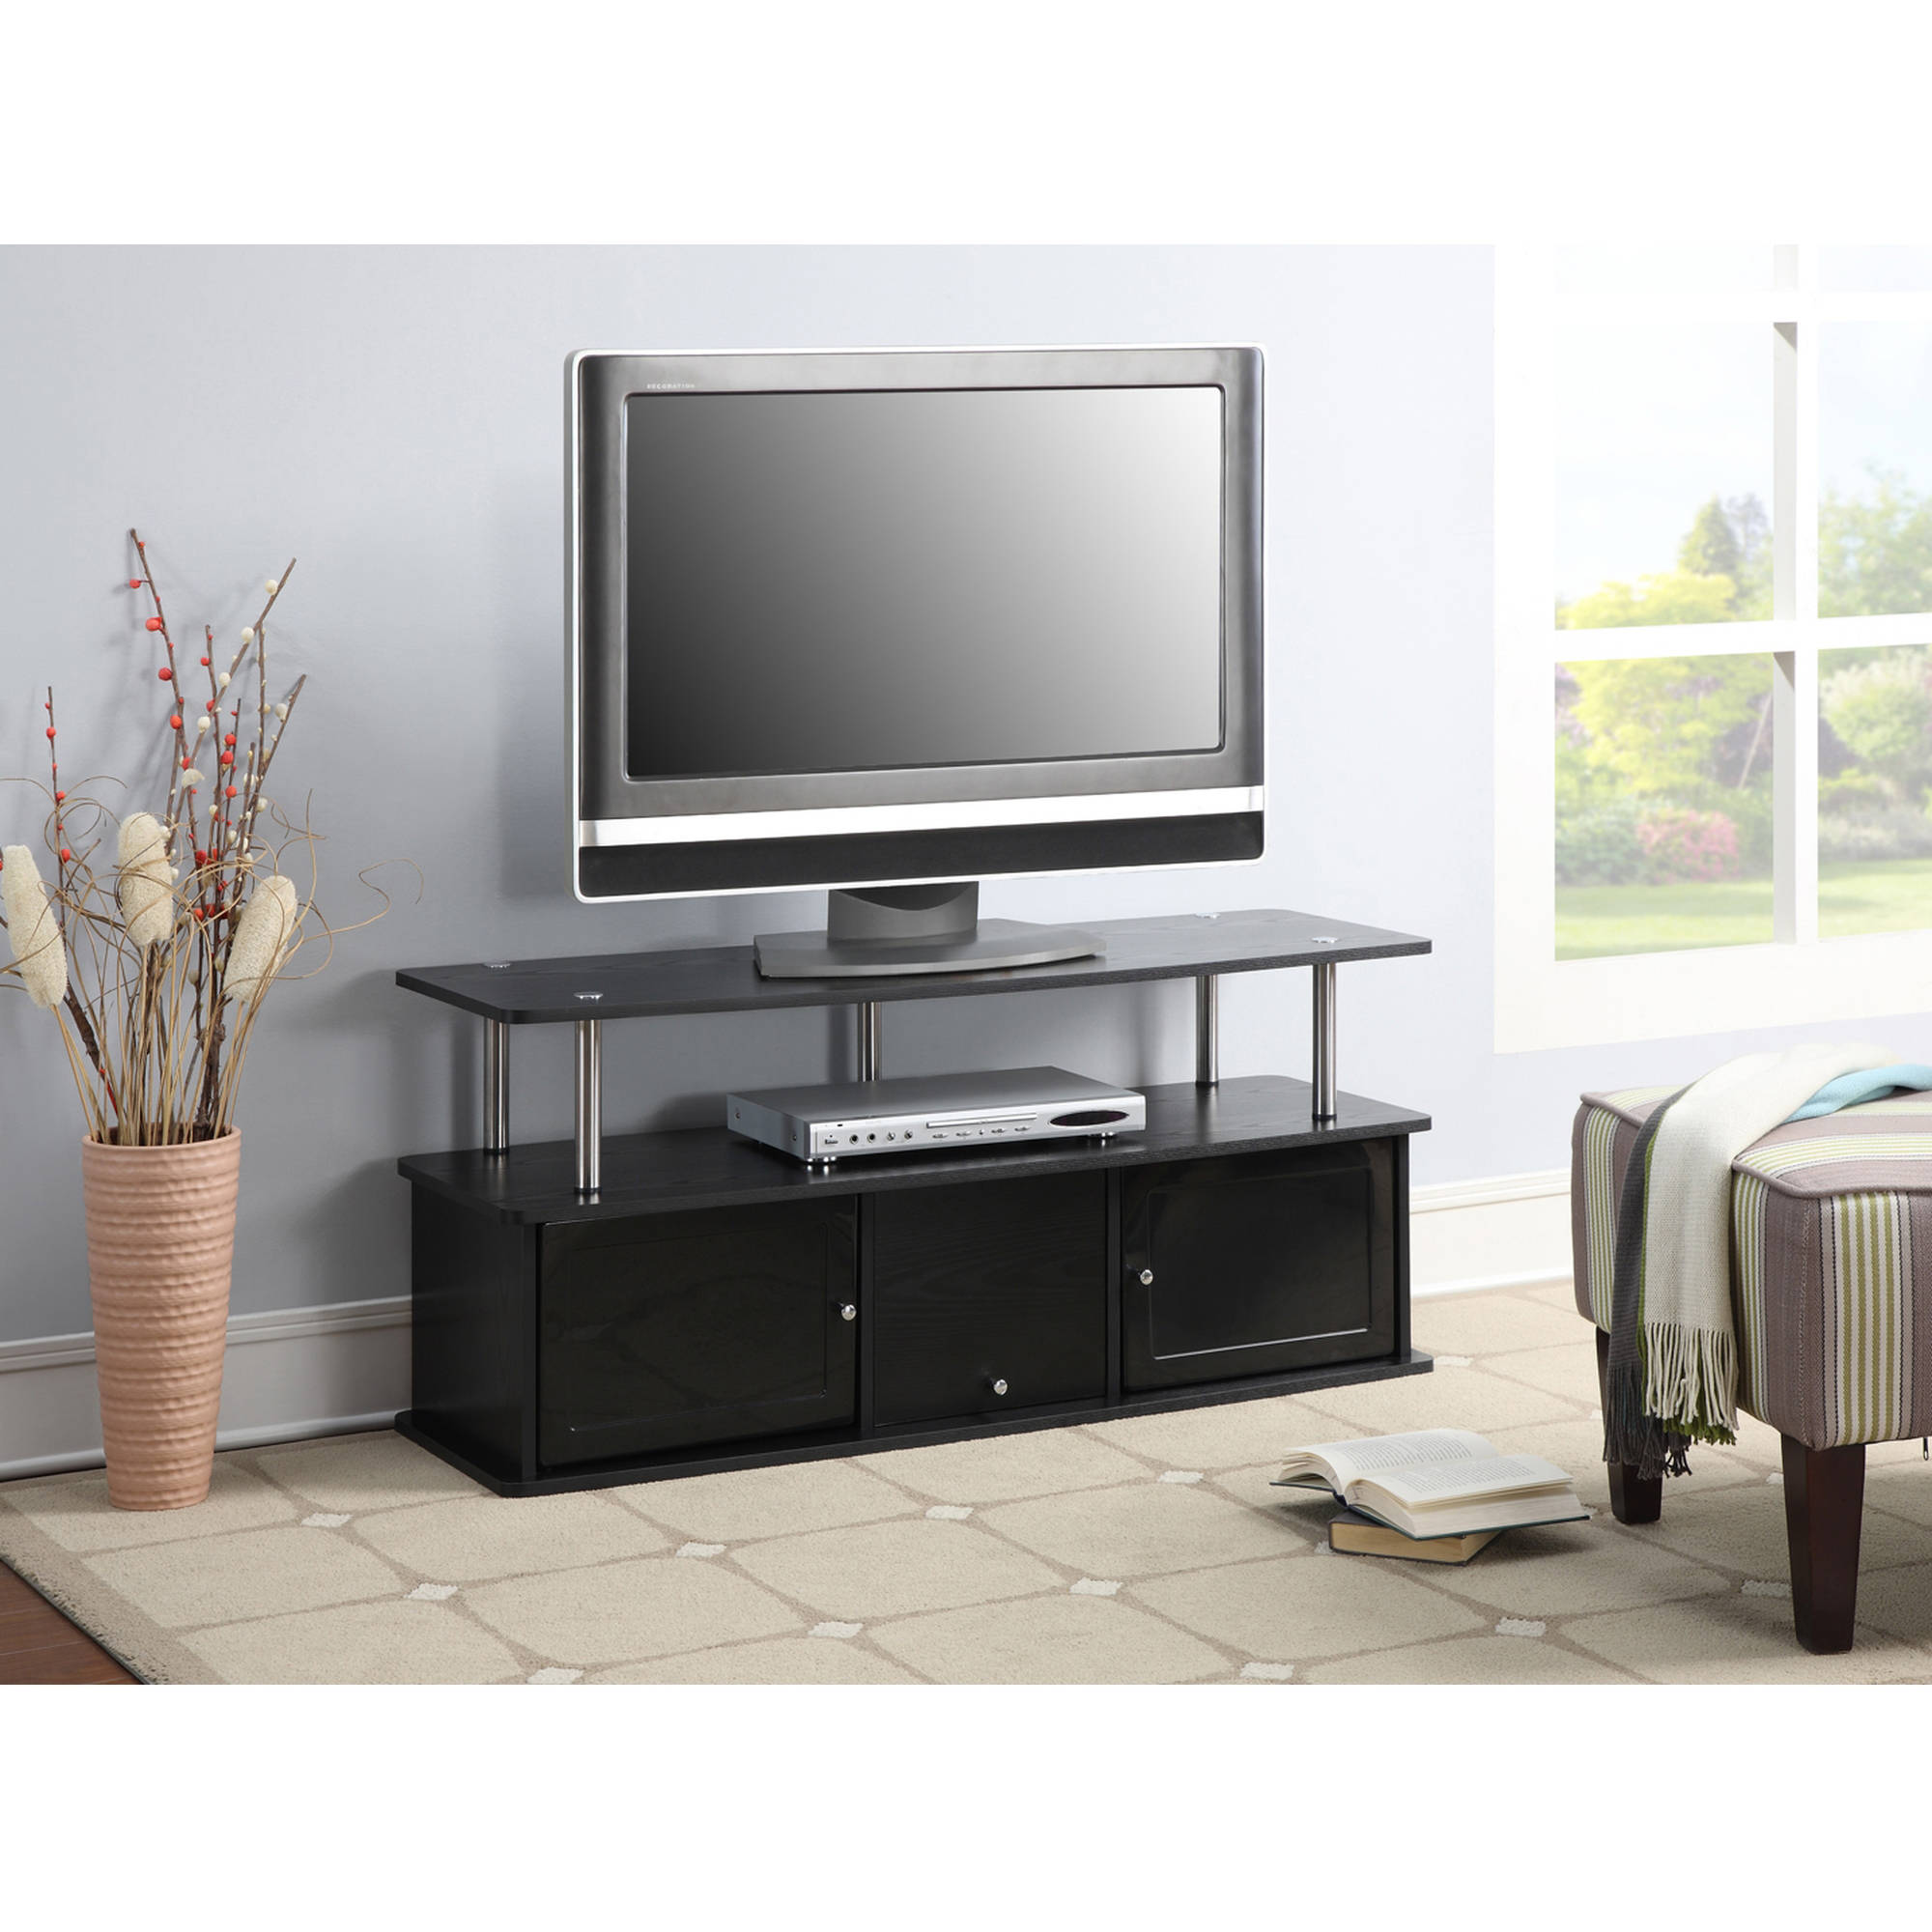 """Convenience Concepts Designs2Go Cherry TV Stand with 3 Cabinets for TVs up to 50"""", Multiple Colors"""